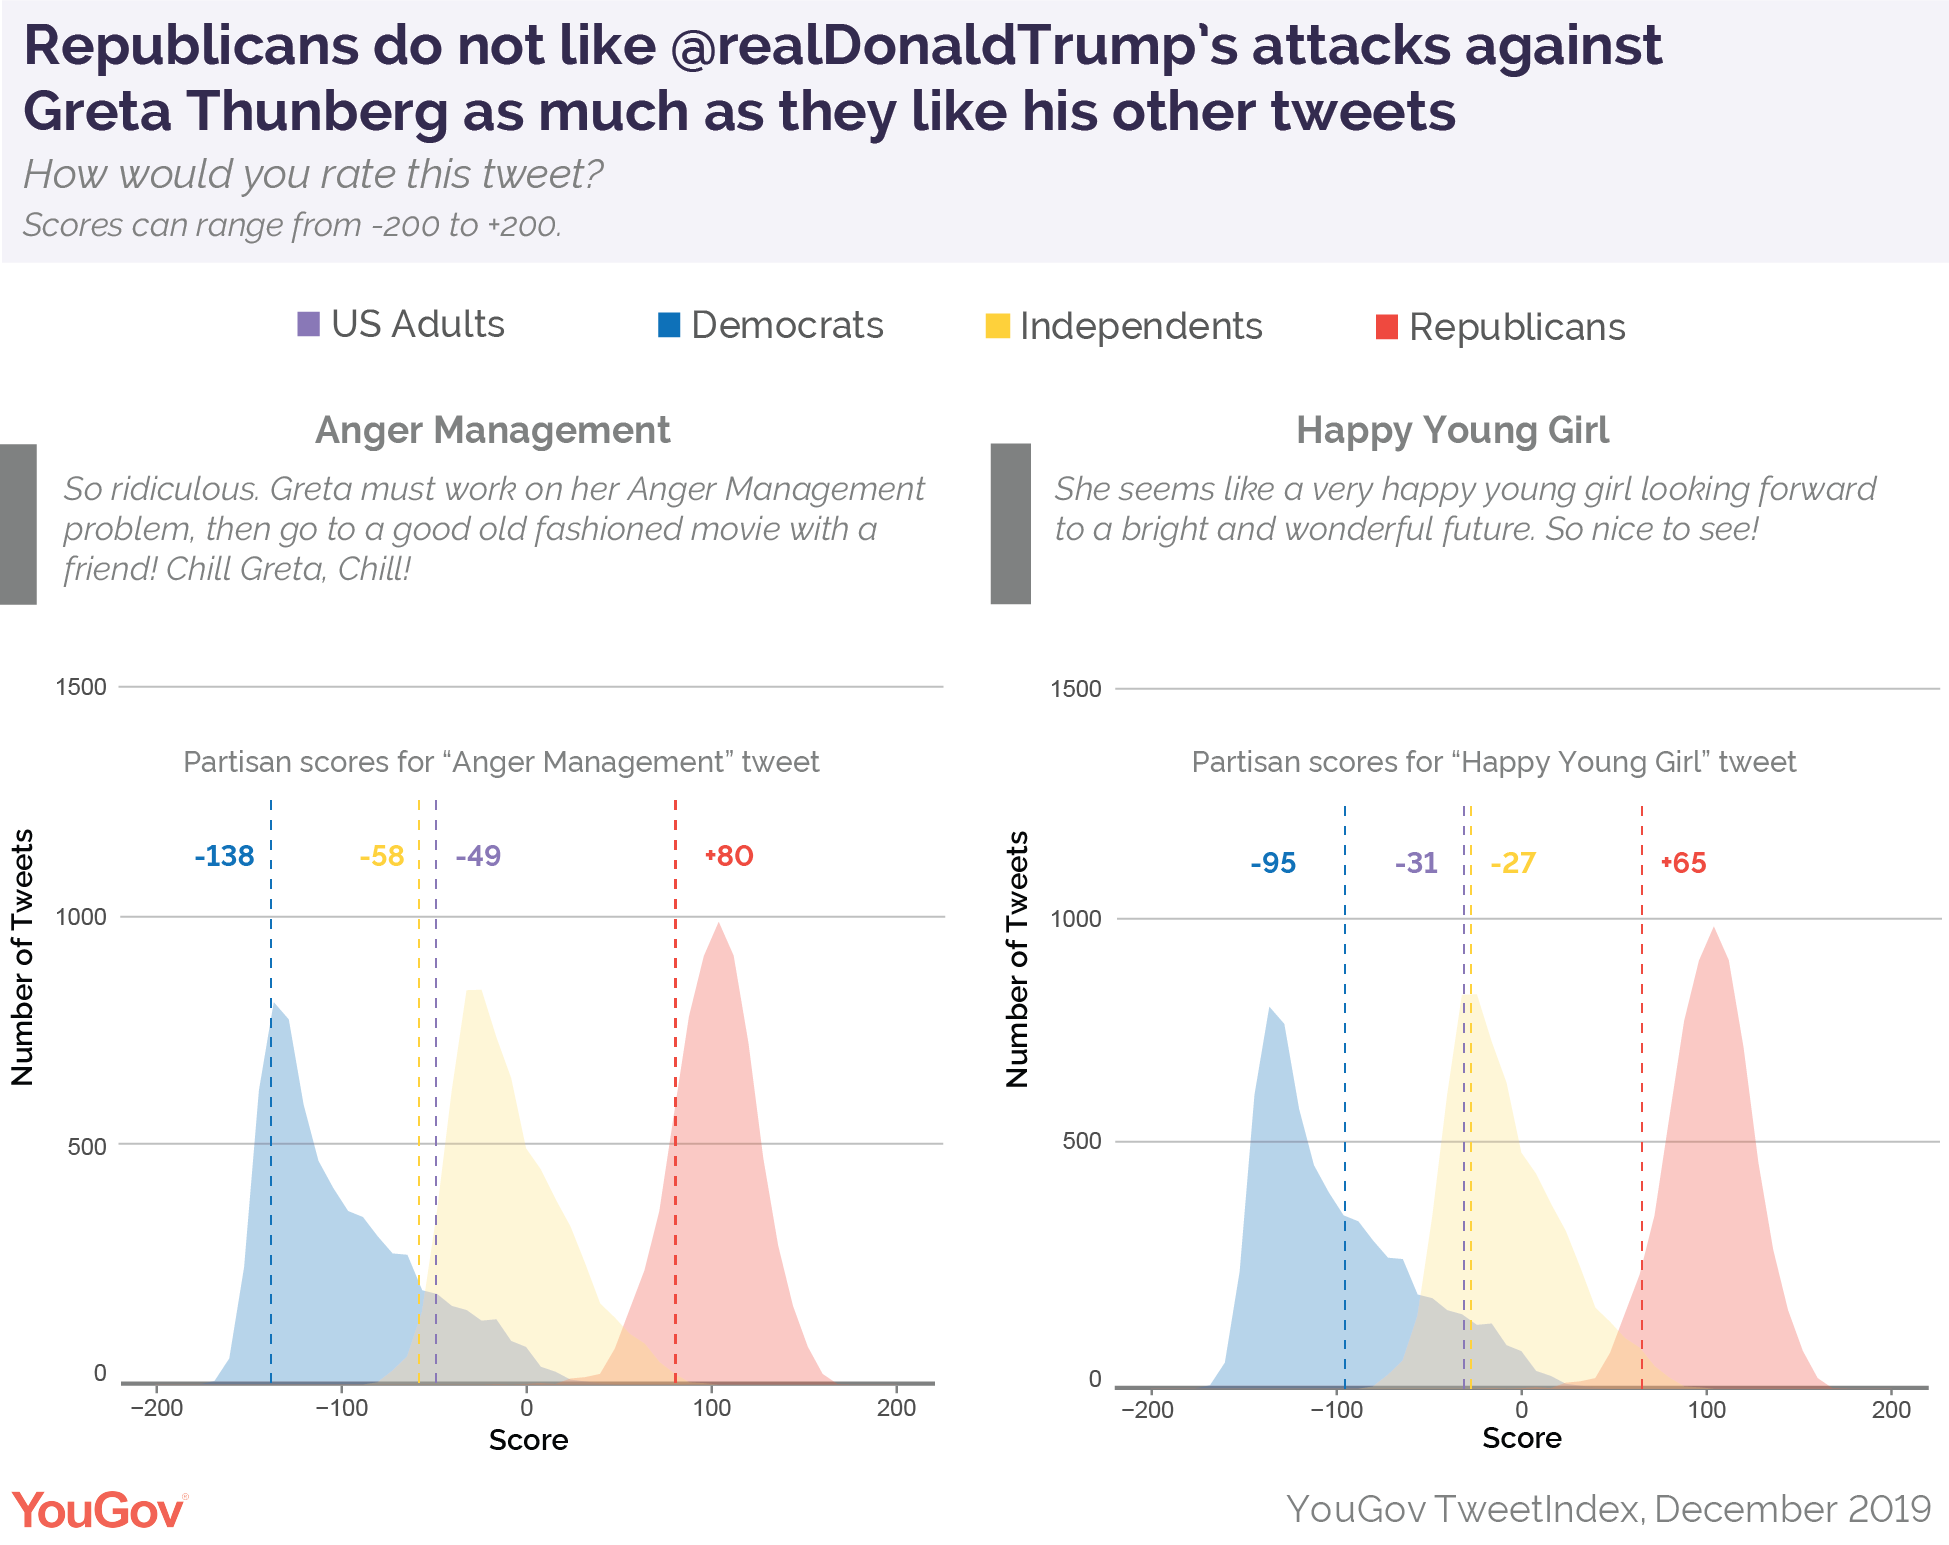 Republicans do not like President Donald Trump's attacks against Greta Thunberg as much as they like his other tweets